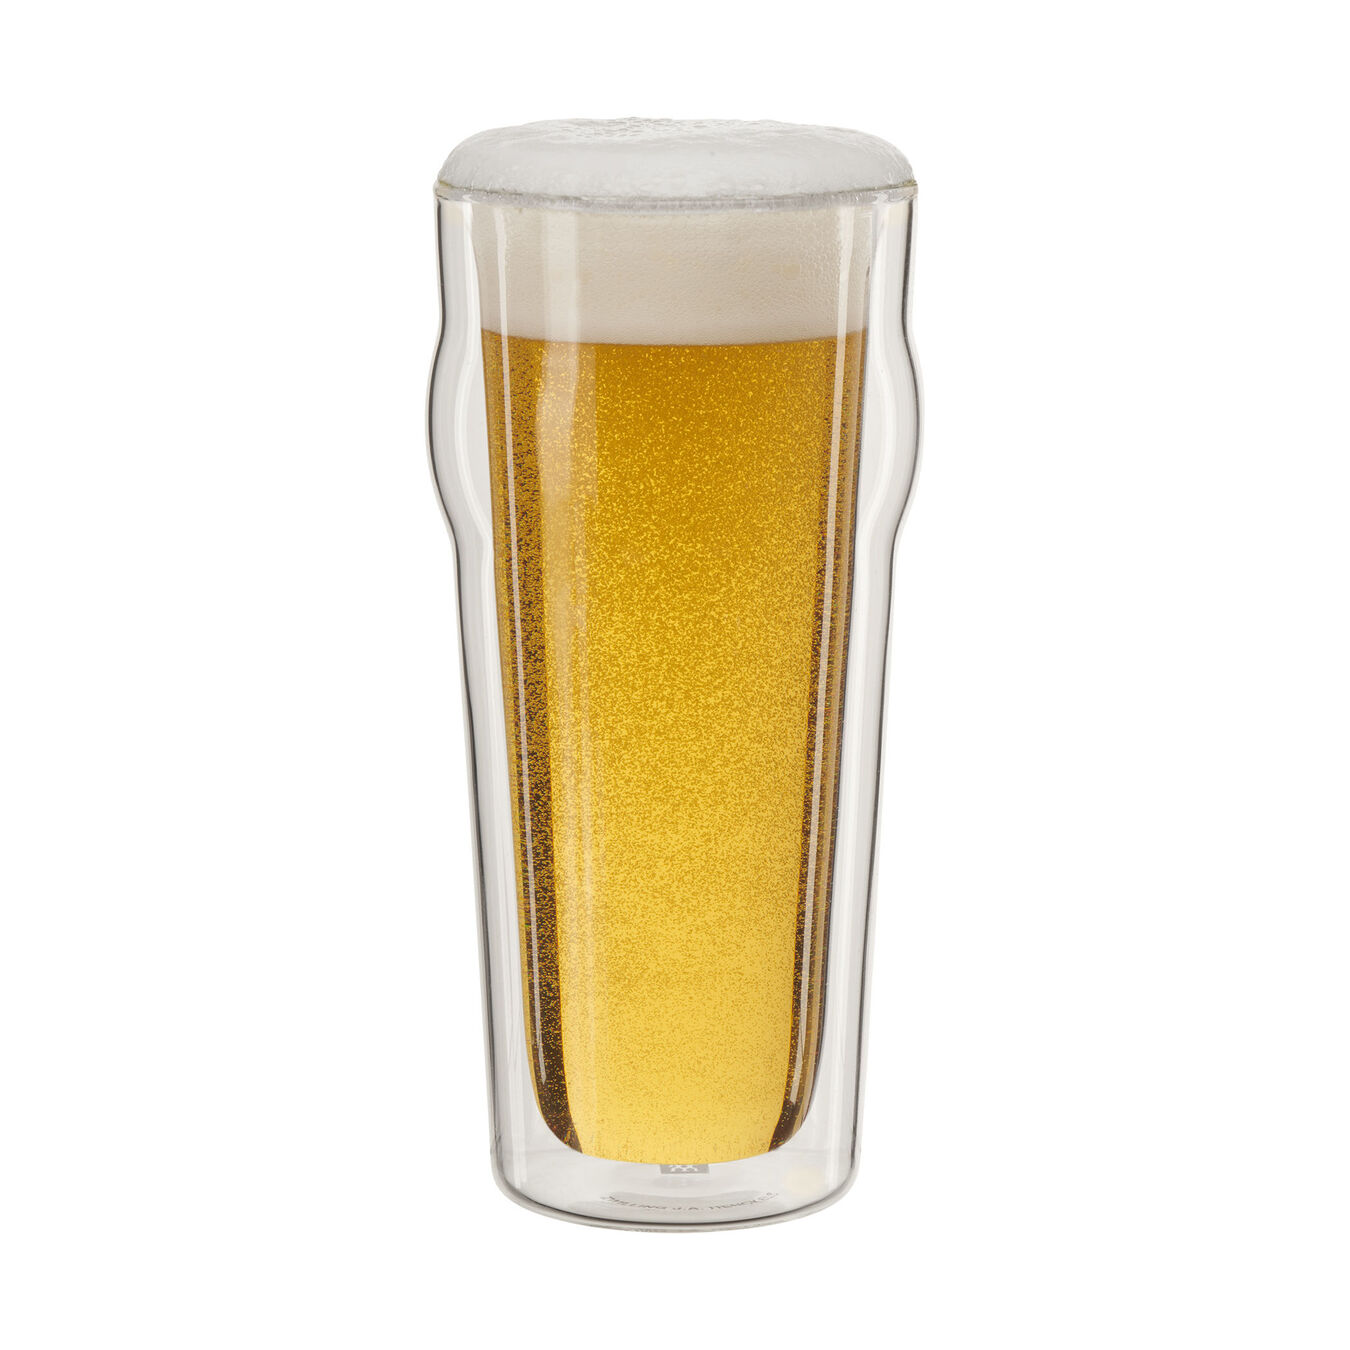 2-pc  Beer glass set,,large 1